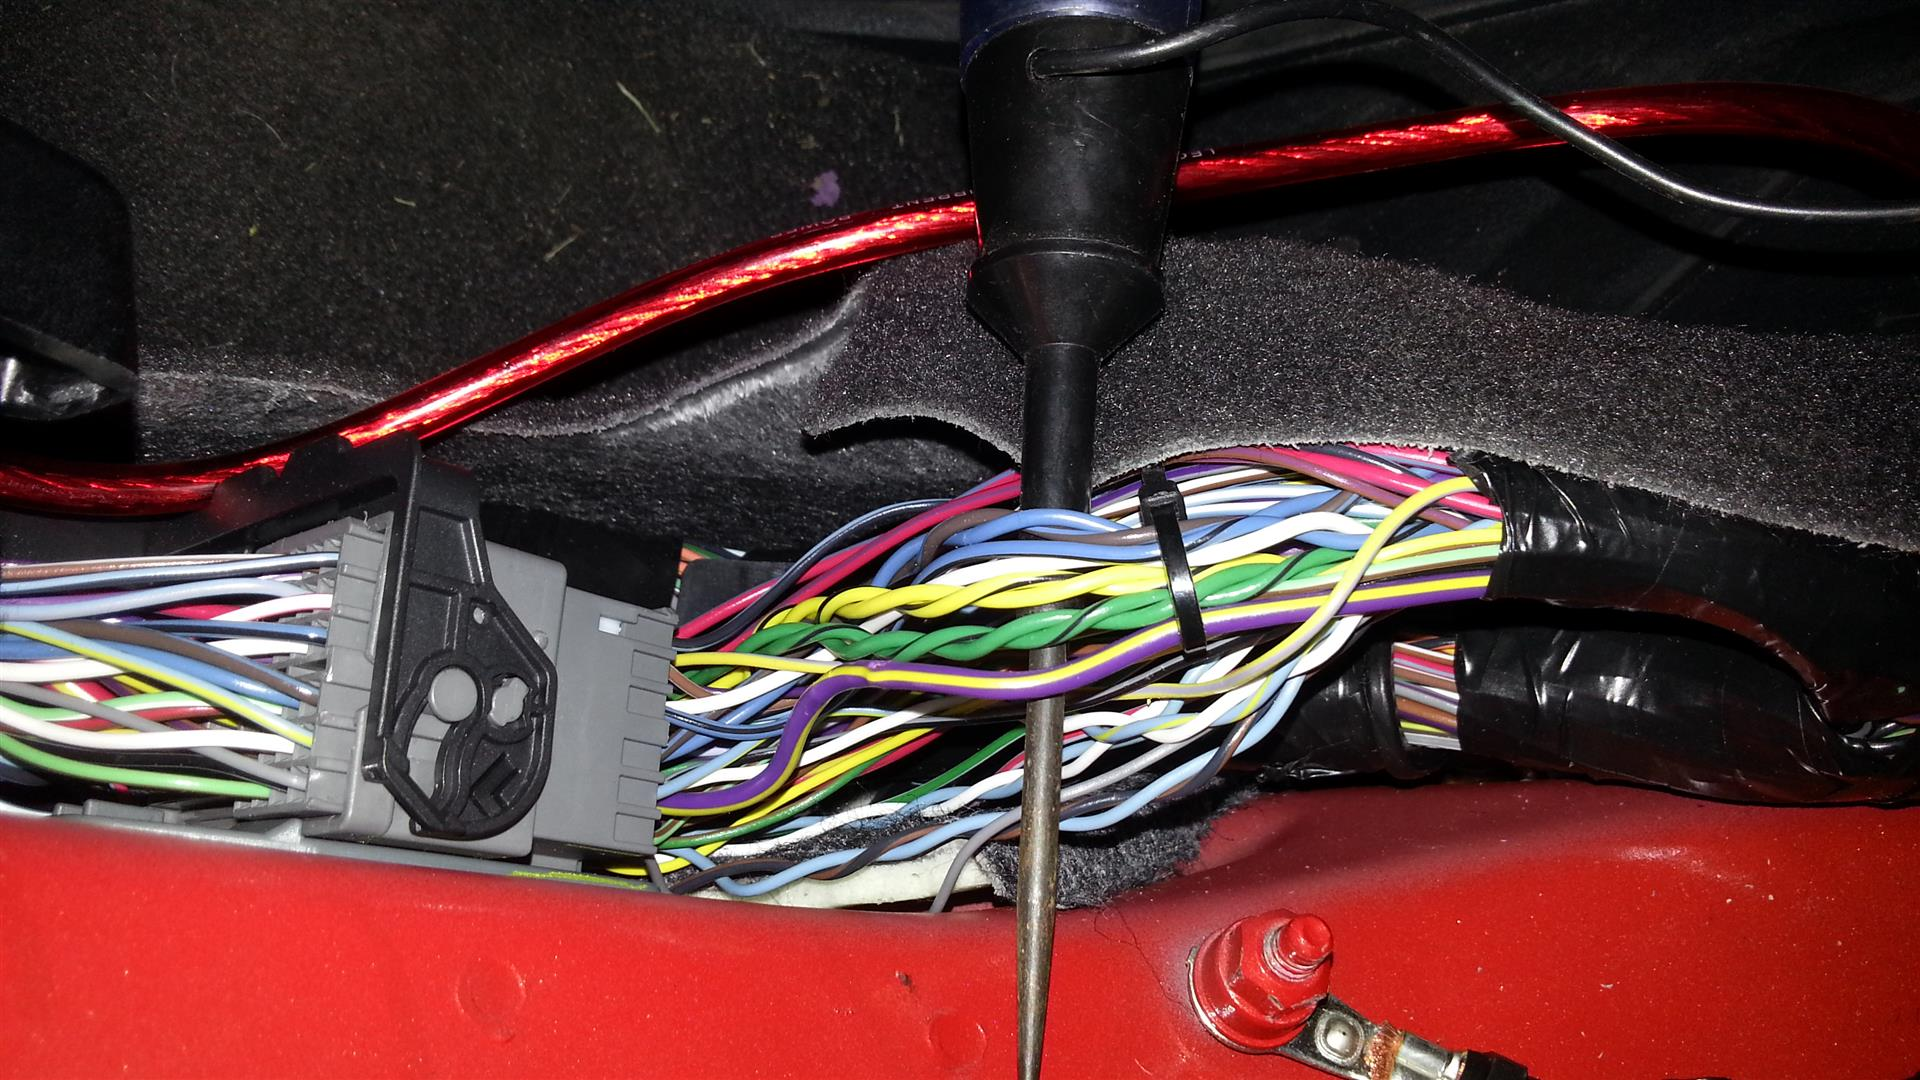 sonicstereo09 speaker wire color codes chevy sonic owners forum 2013 silverado wiring diagram at edmiracle.co